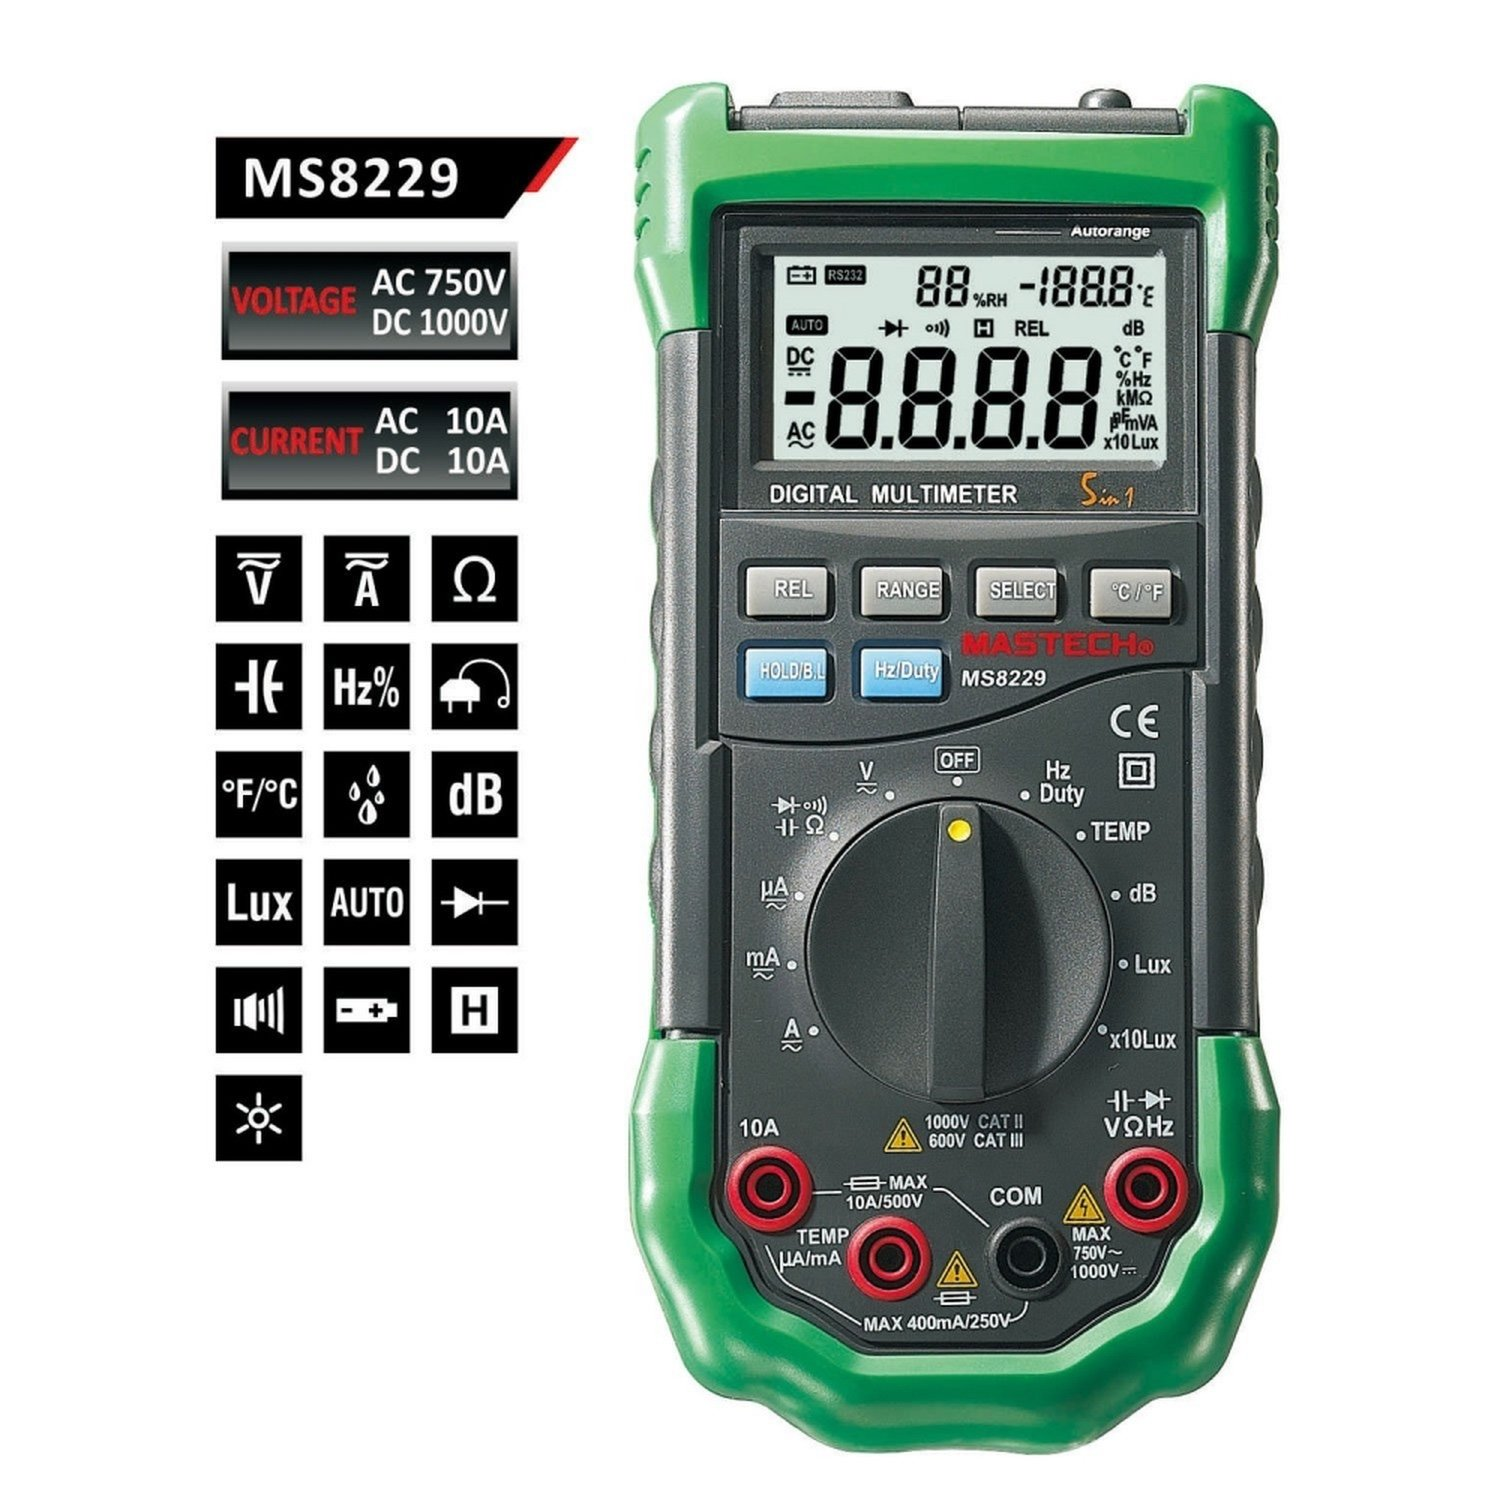 цены MASTECH MS8229 5 in 1 3999 Multimeter tester Lux Humidity Sound Poke backlight